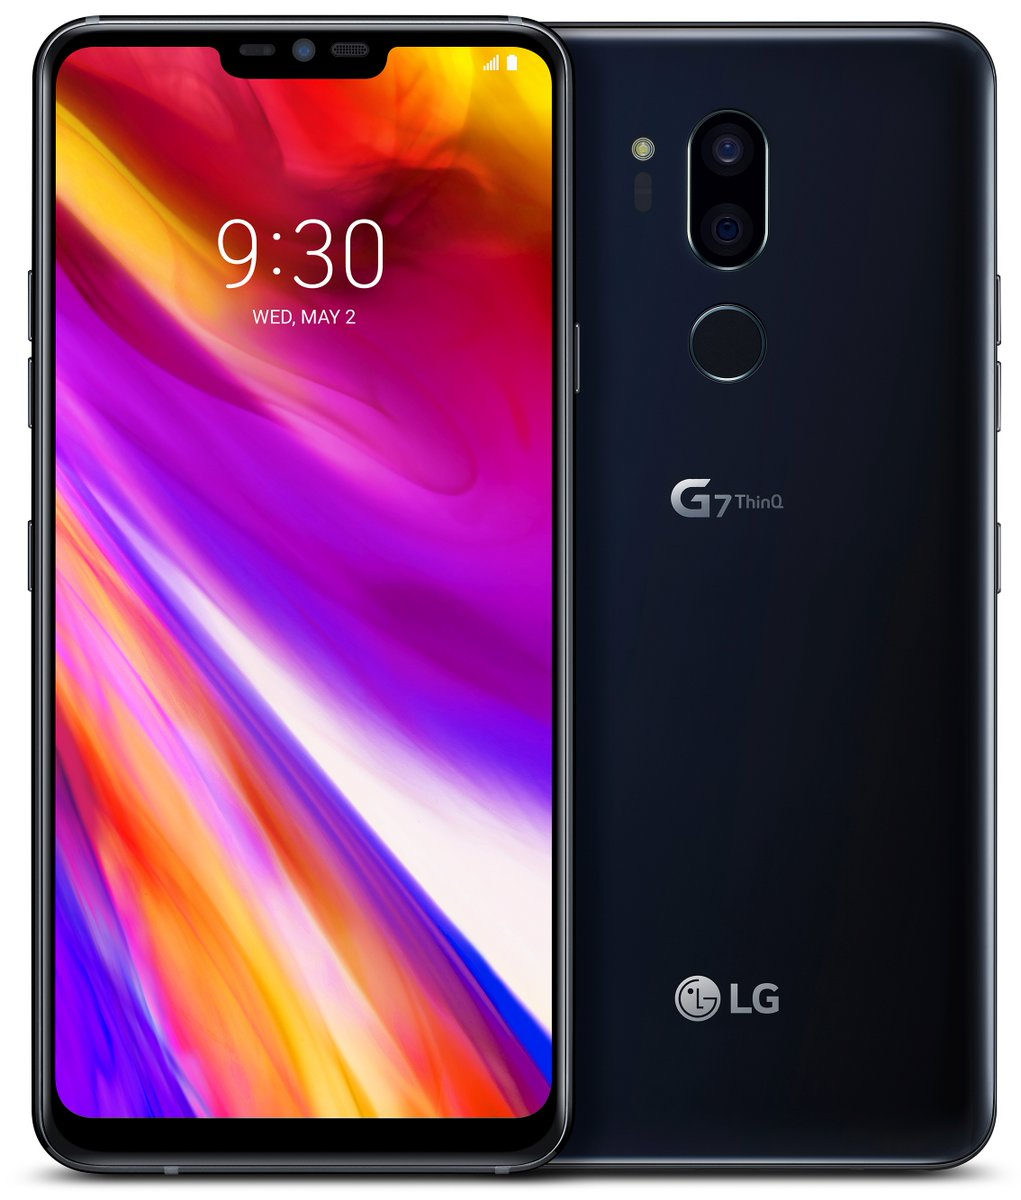 lg g7 think black version close-up render